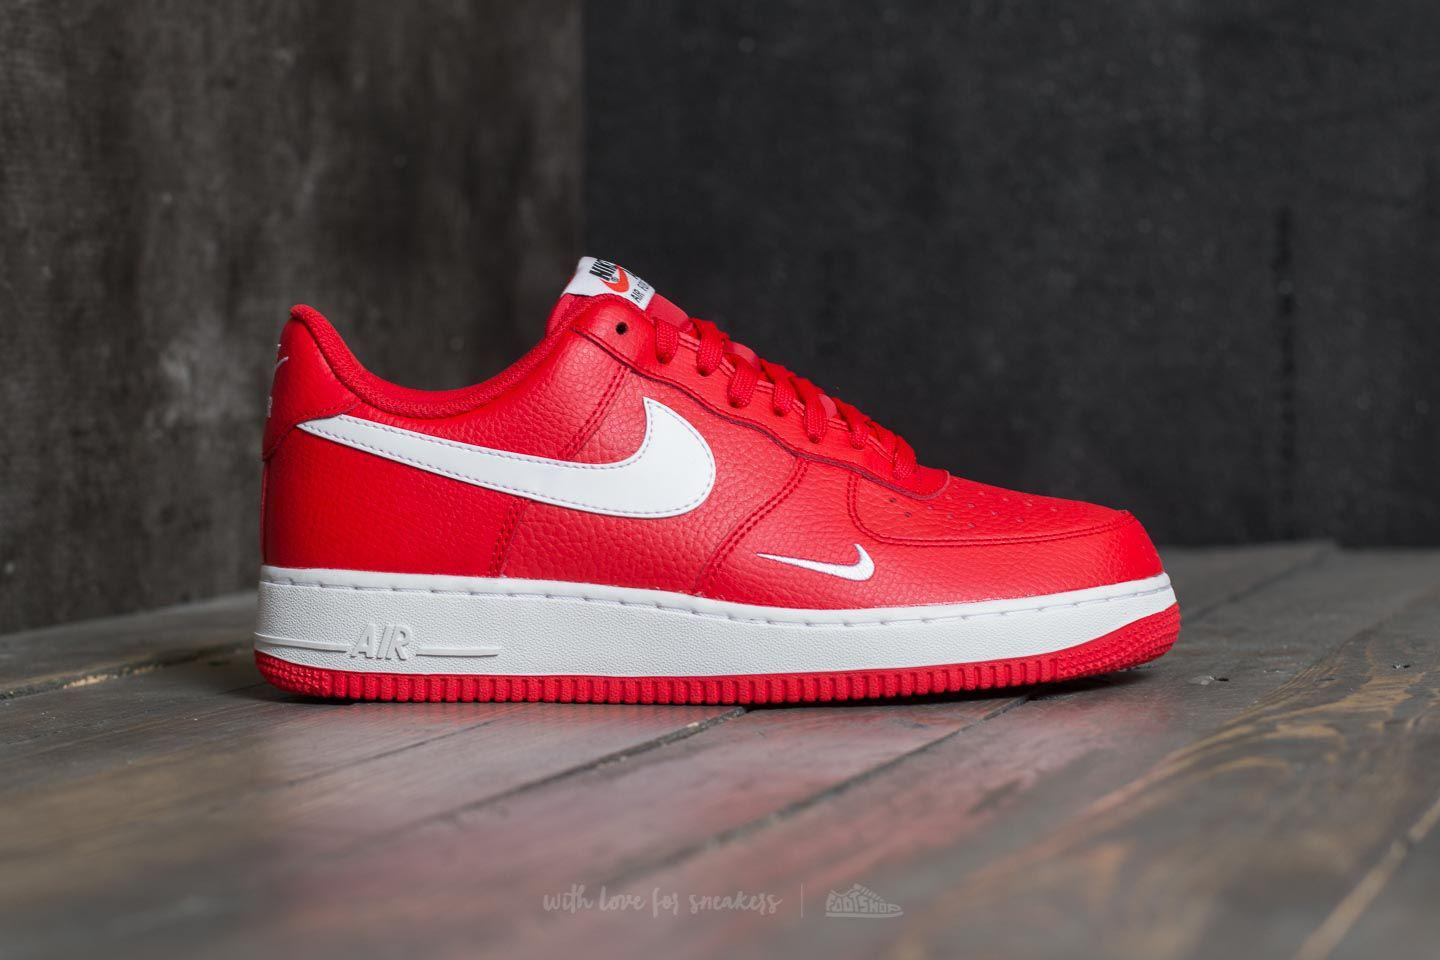 8f1224005137 Lyst - Nike Air Force 1 University Red  White-white in Red for Men